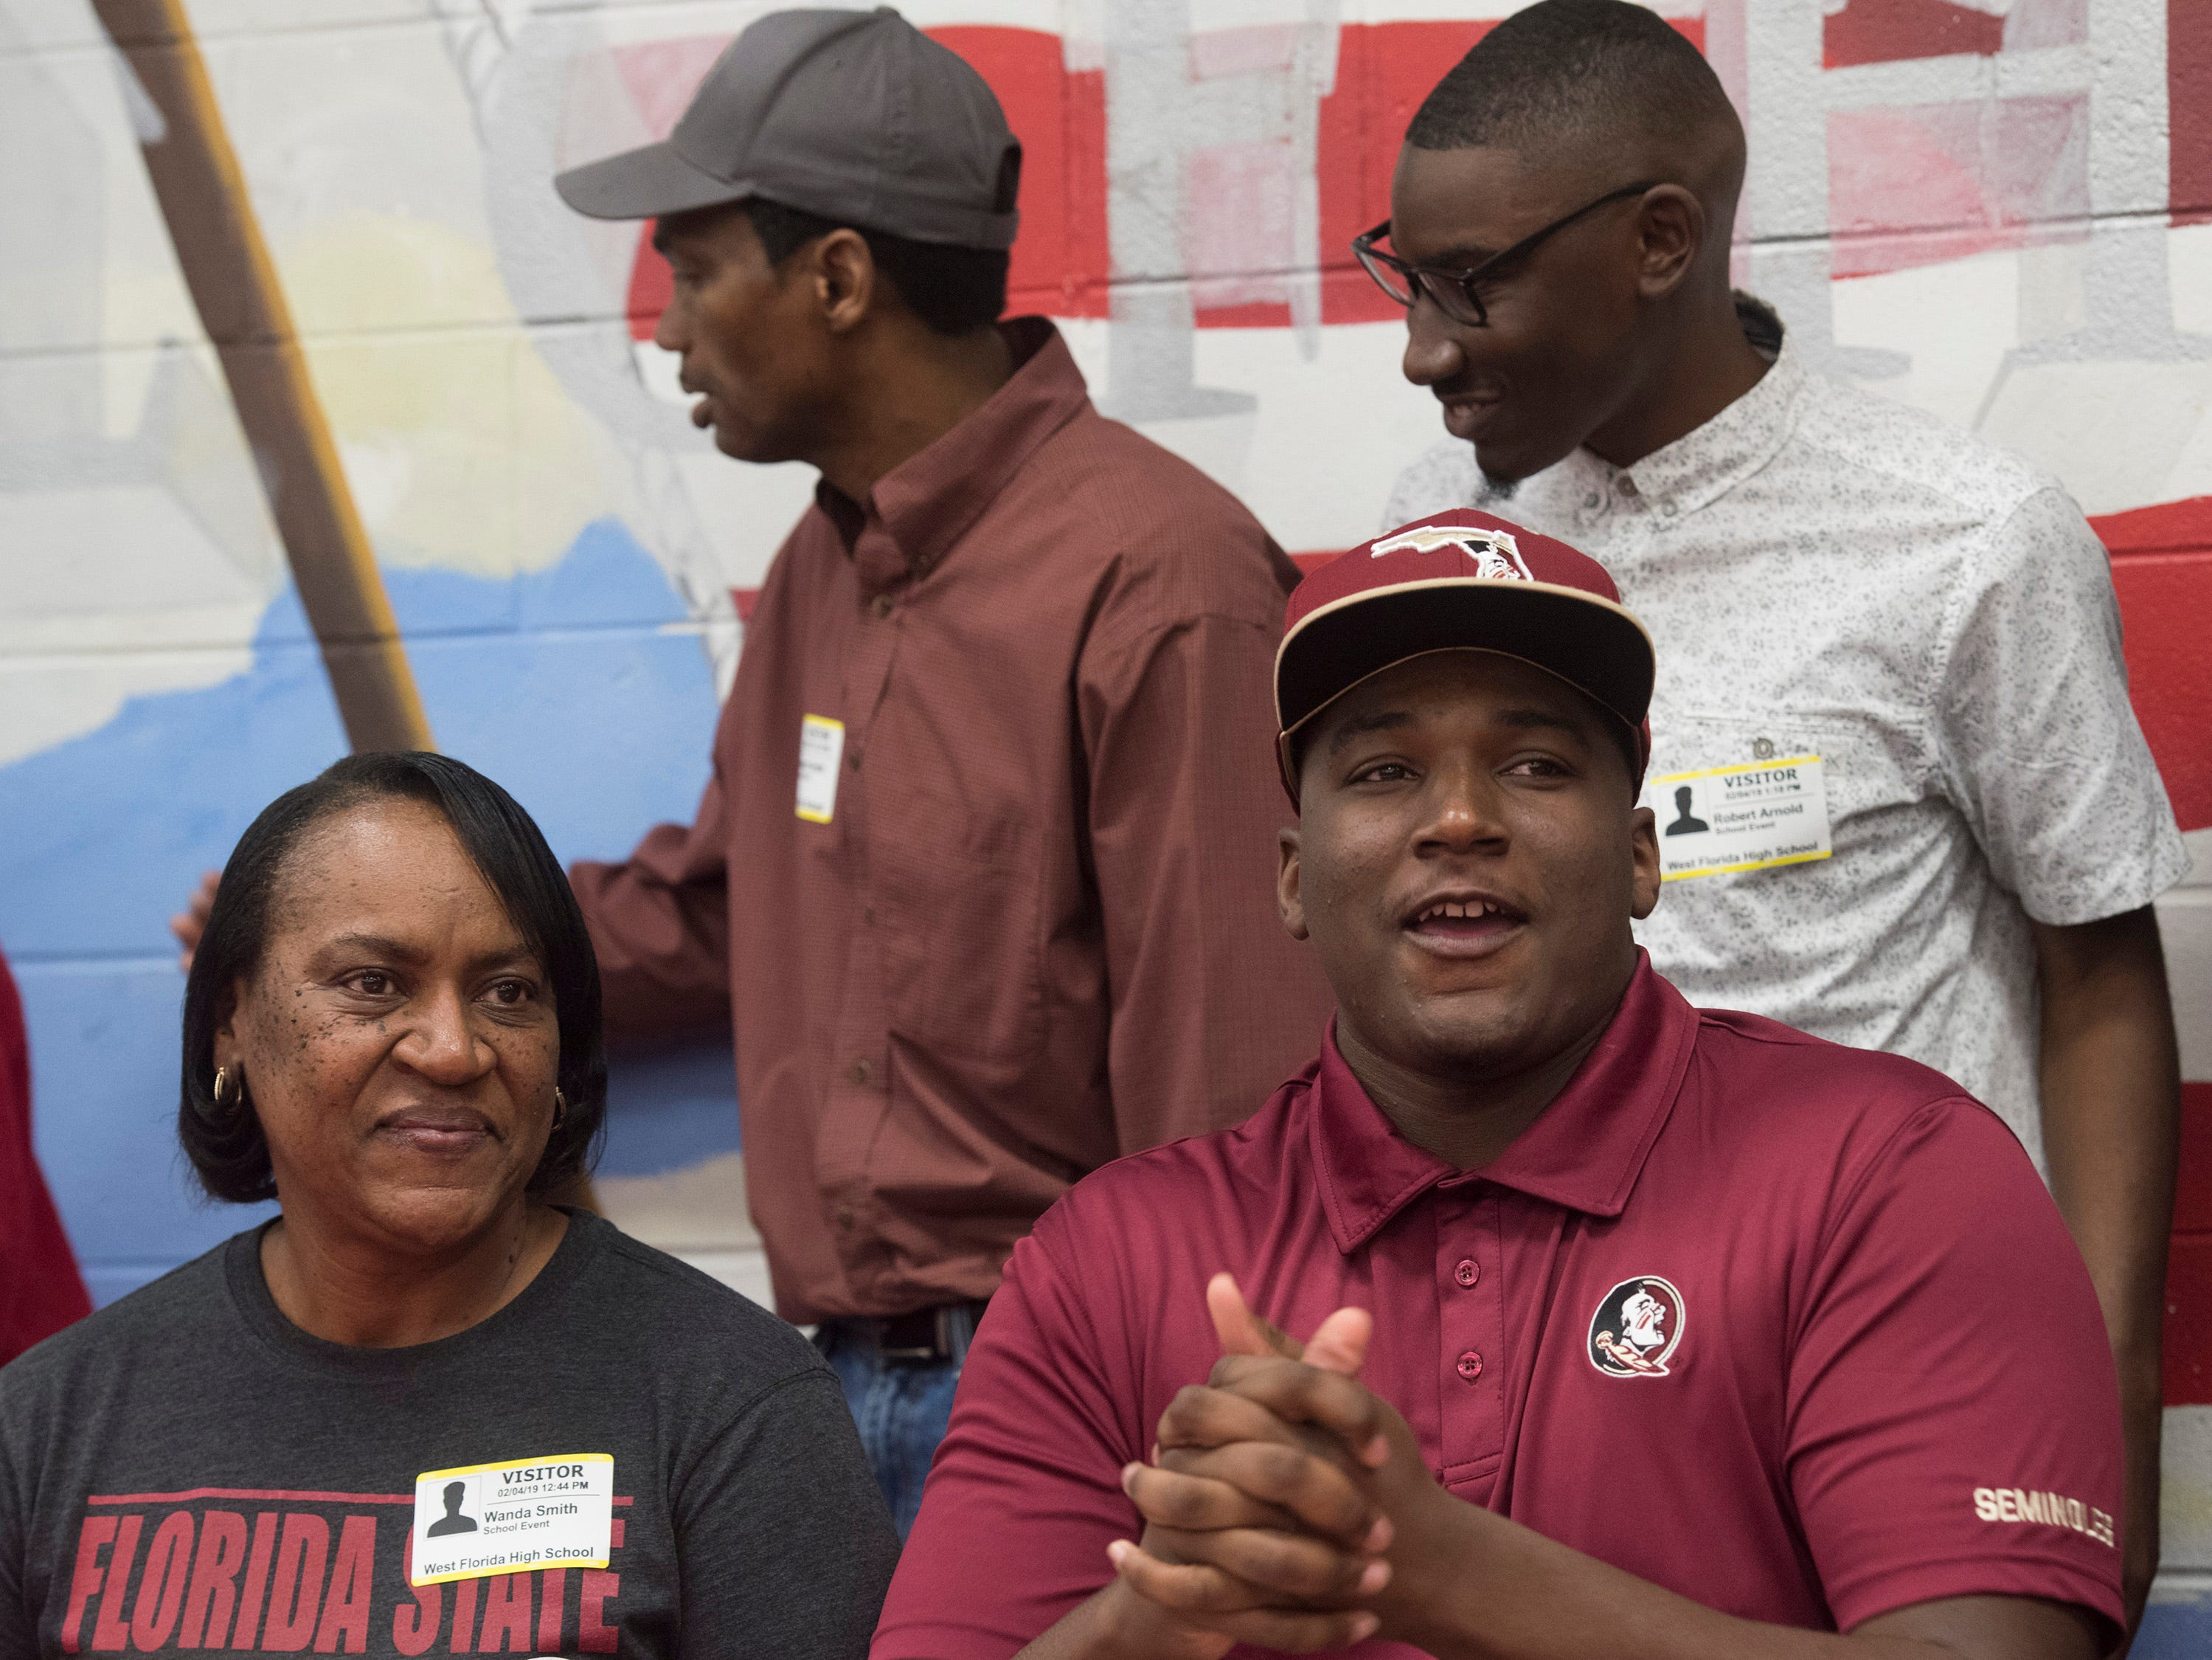 West Florida High School's Darius Washington commits to Florida State University on National Signing Day on Wednesday Feb.6, 2019.